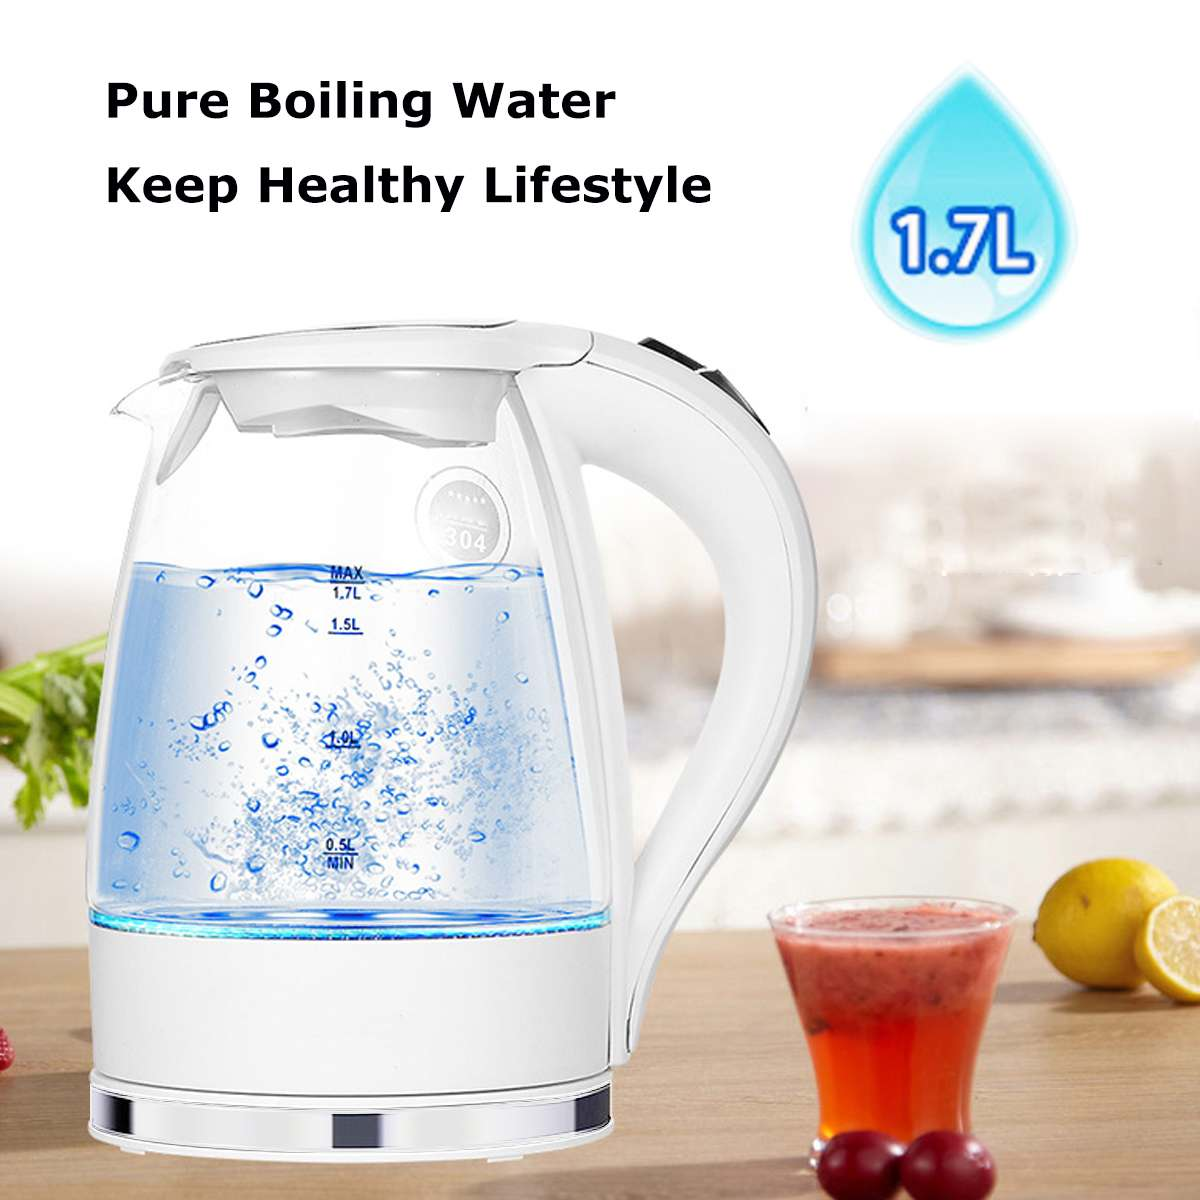 1.7L 2200W Blue LED Illuminated Glass Kettle Electric Rapid Boil Cordless Electric Kettle Electric kettle Teapot Smart Kettle Electric kettle